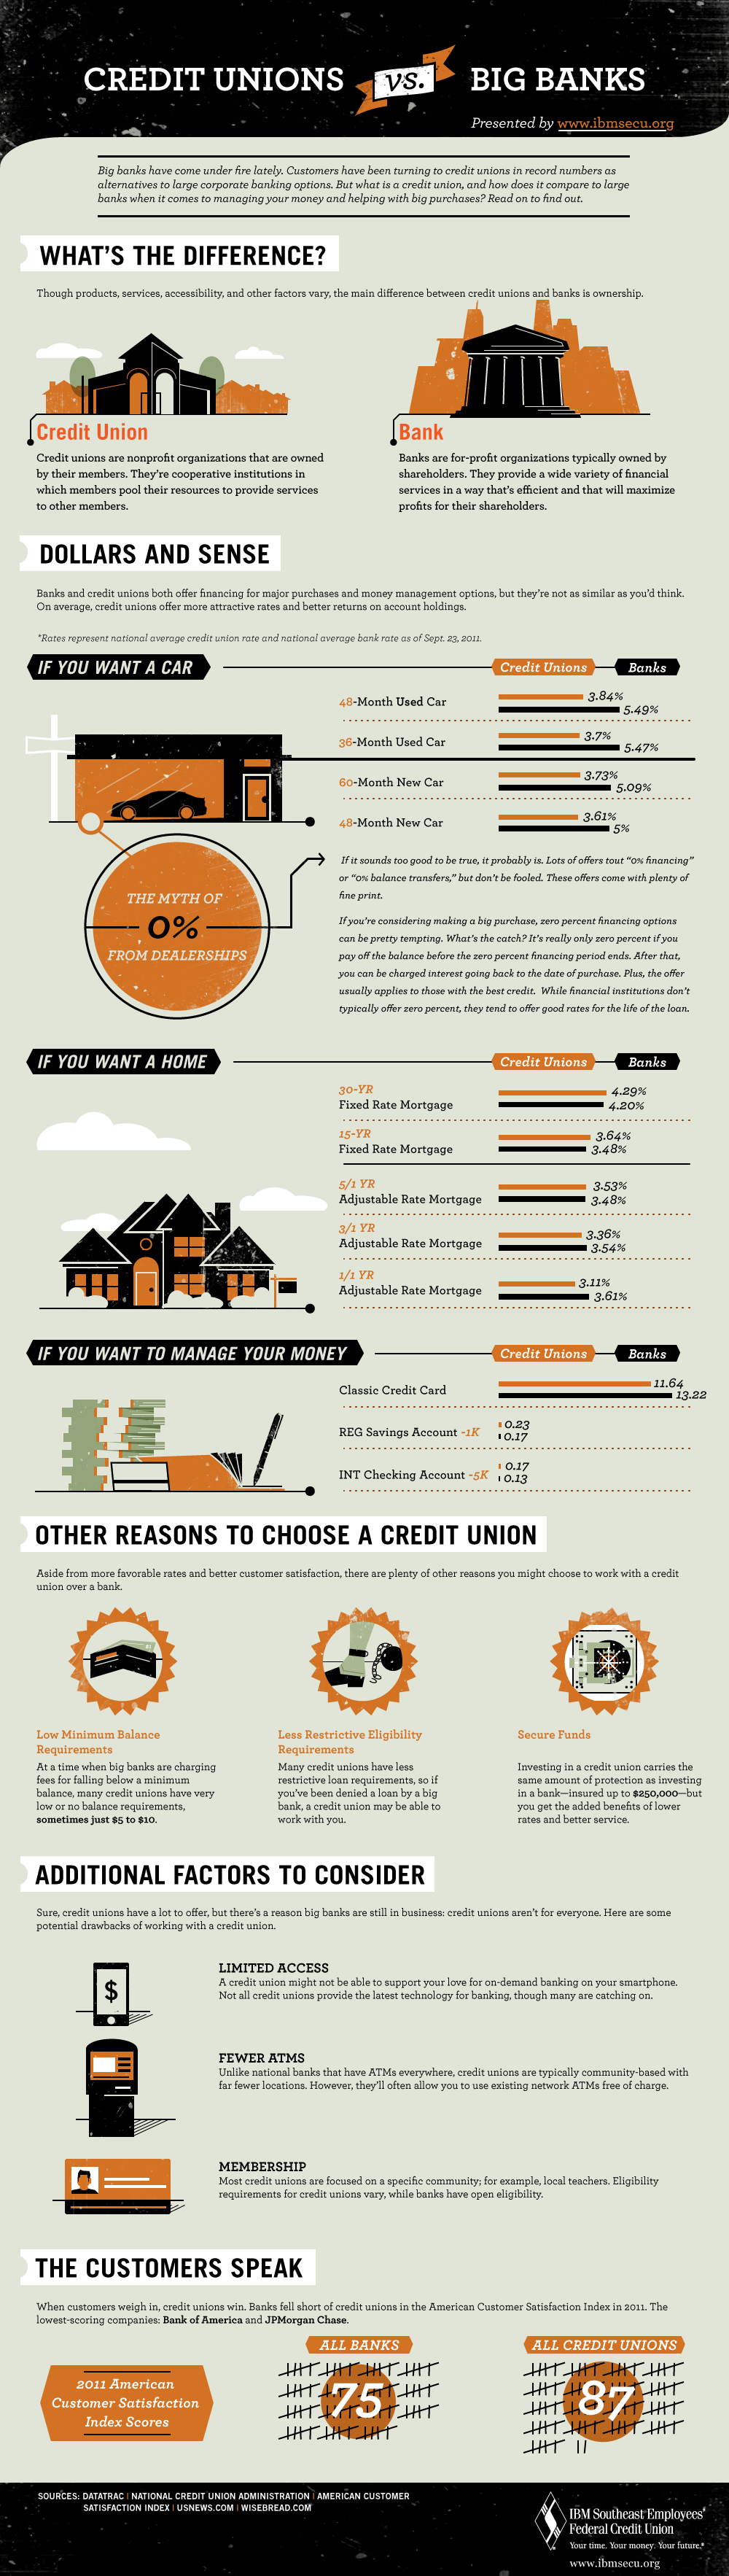 credit unions the pros and cons of moving your money to a not for 2012 05 08 banksvscreditunionsinfographic1000px jpg infographic by ibm southeast employees federal credit union ·